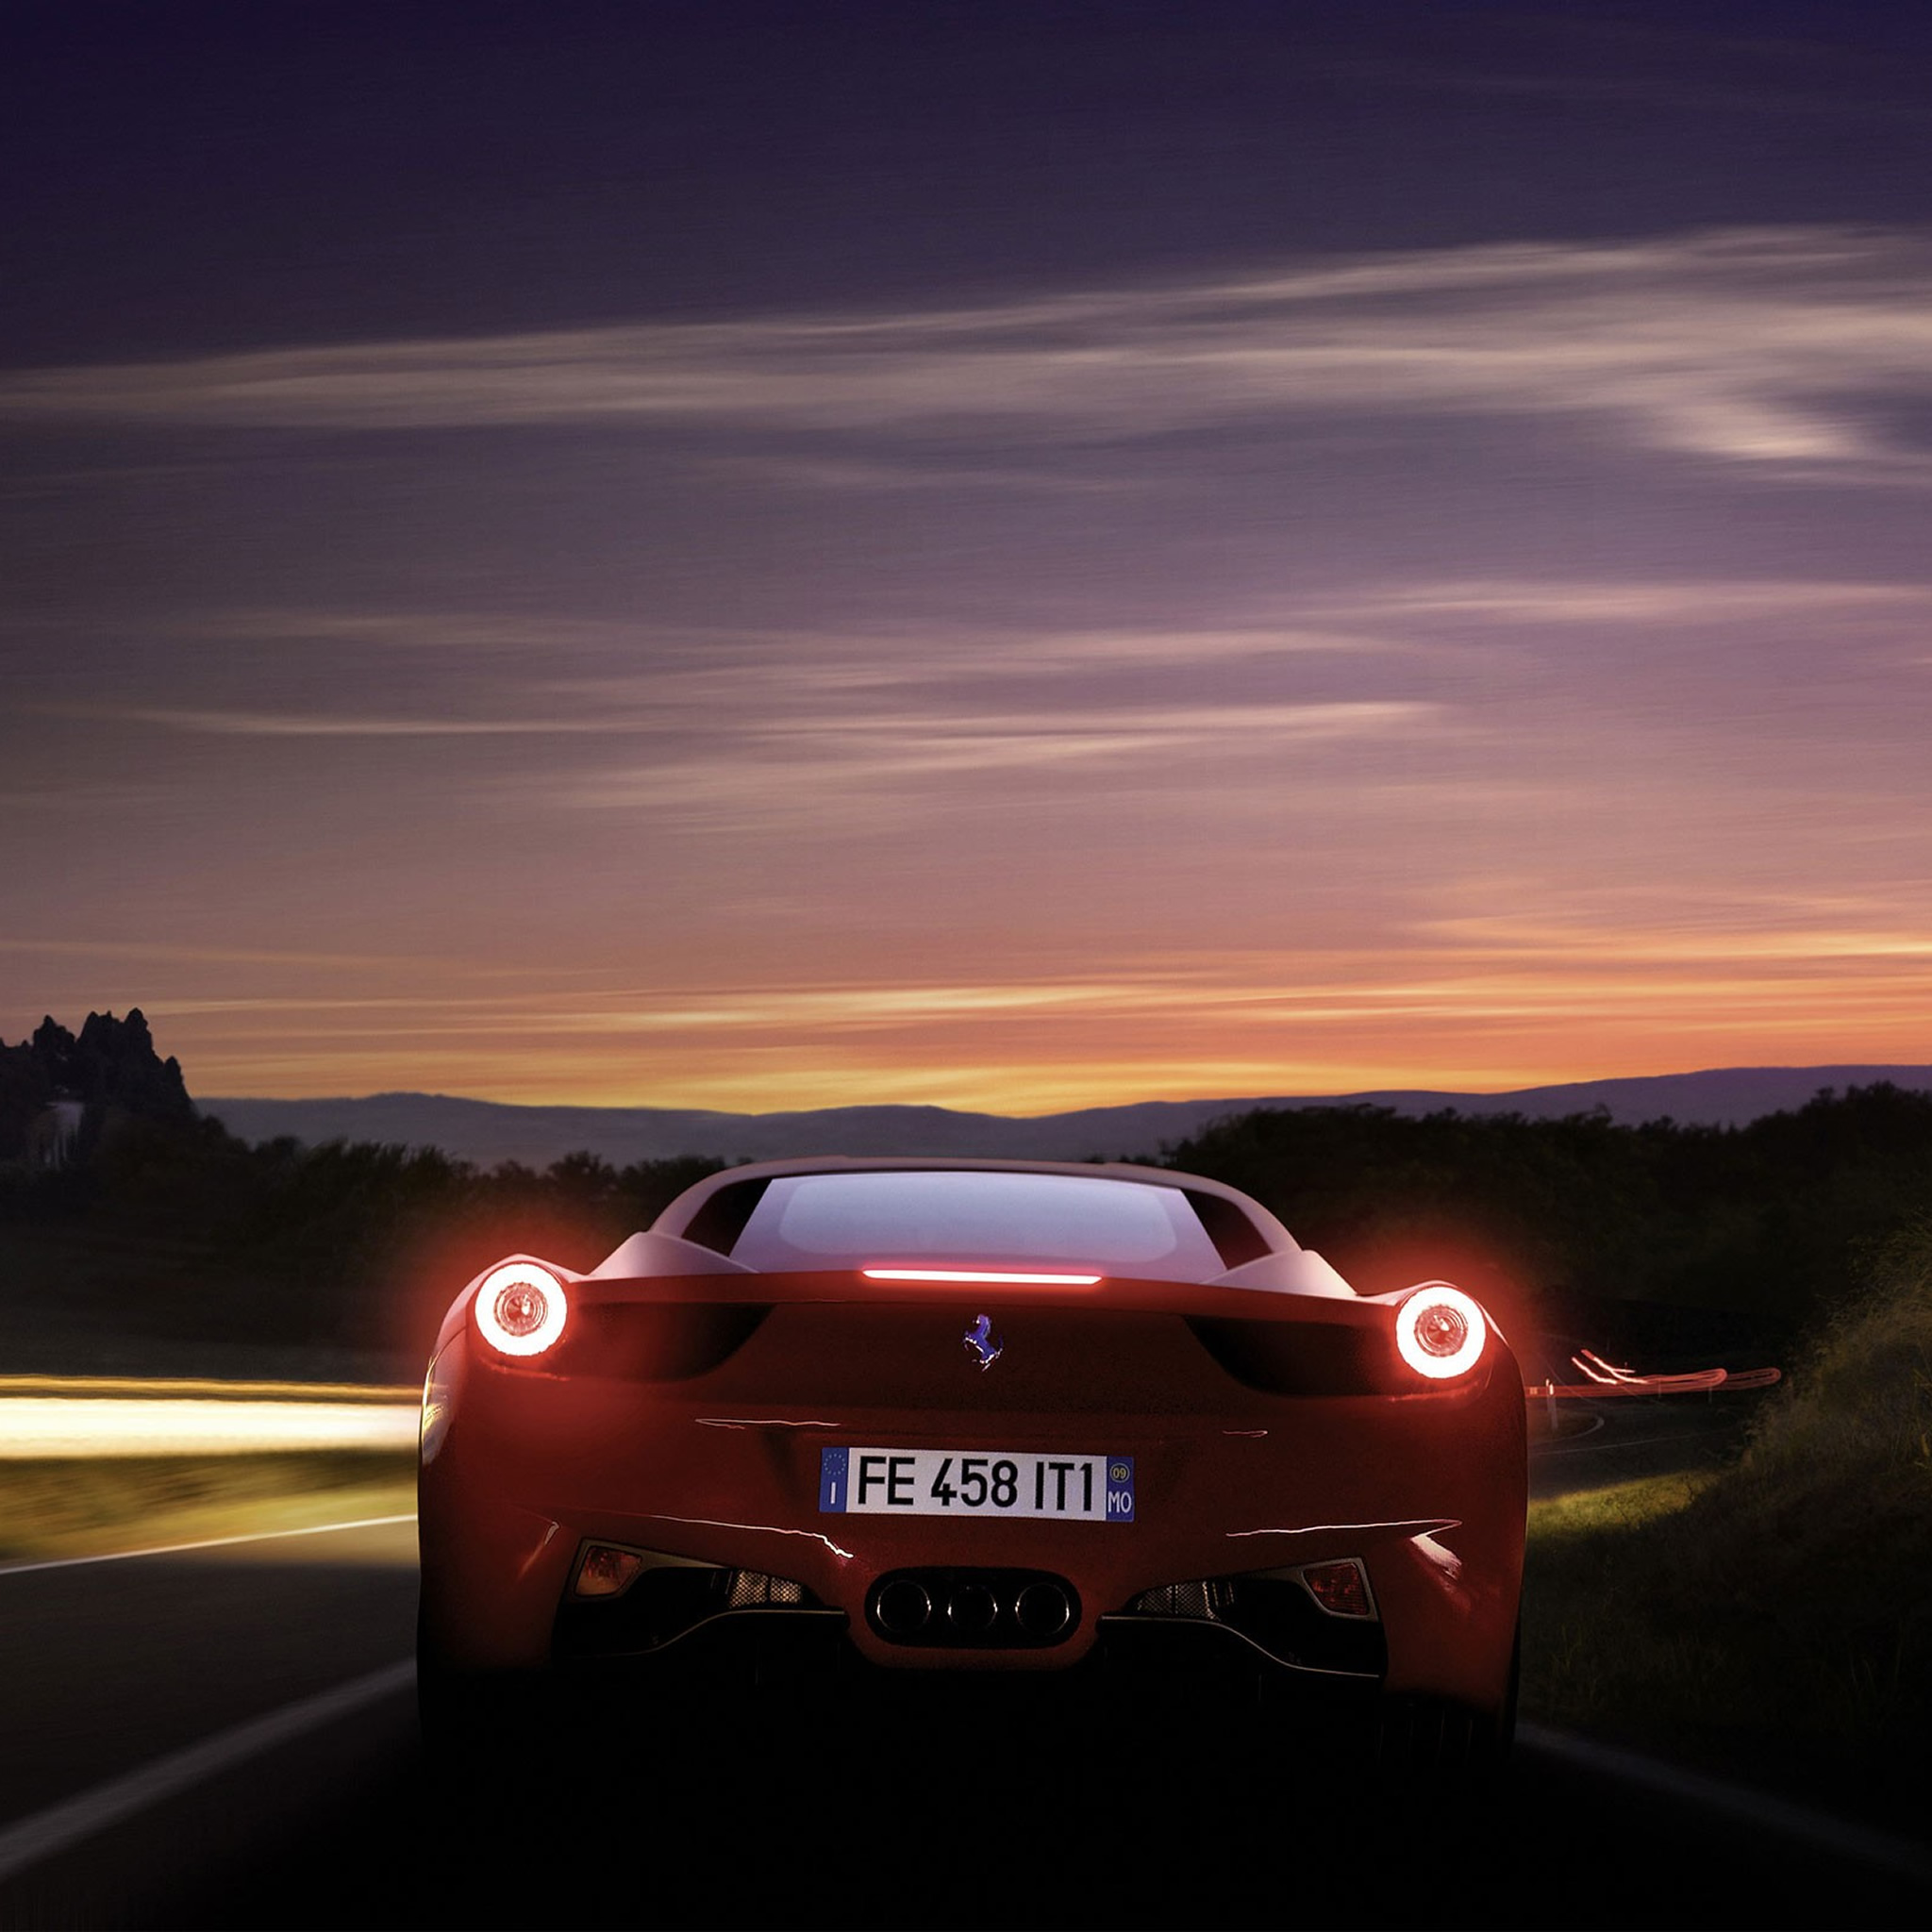 Running Ferrari 458 -iPad Wallpaper For IPhone 11, Pro Max